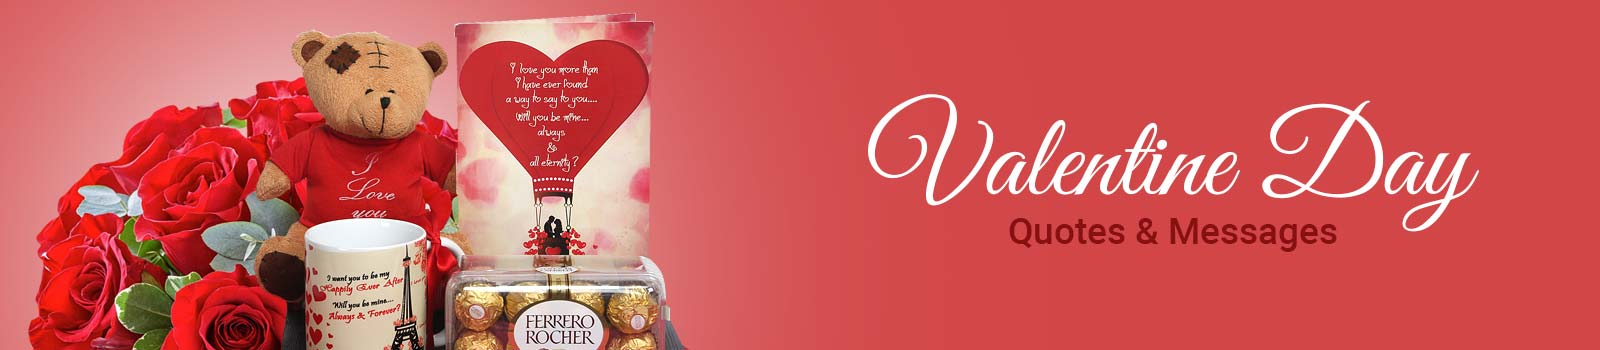 Valentine Day Quotes & Messages